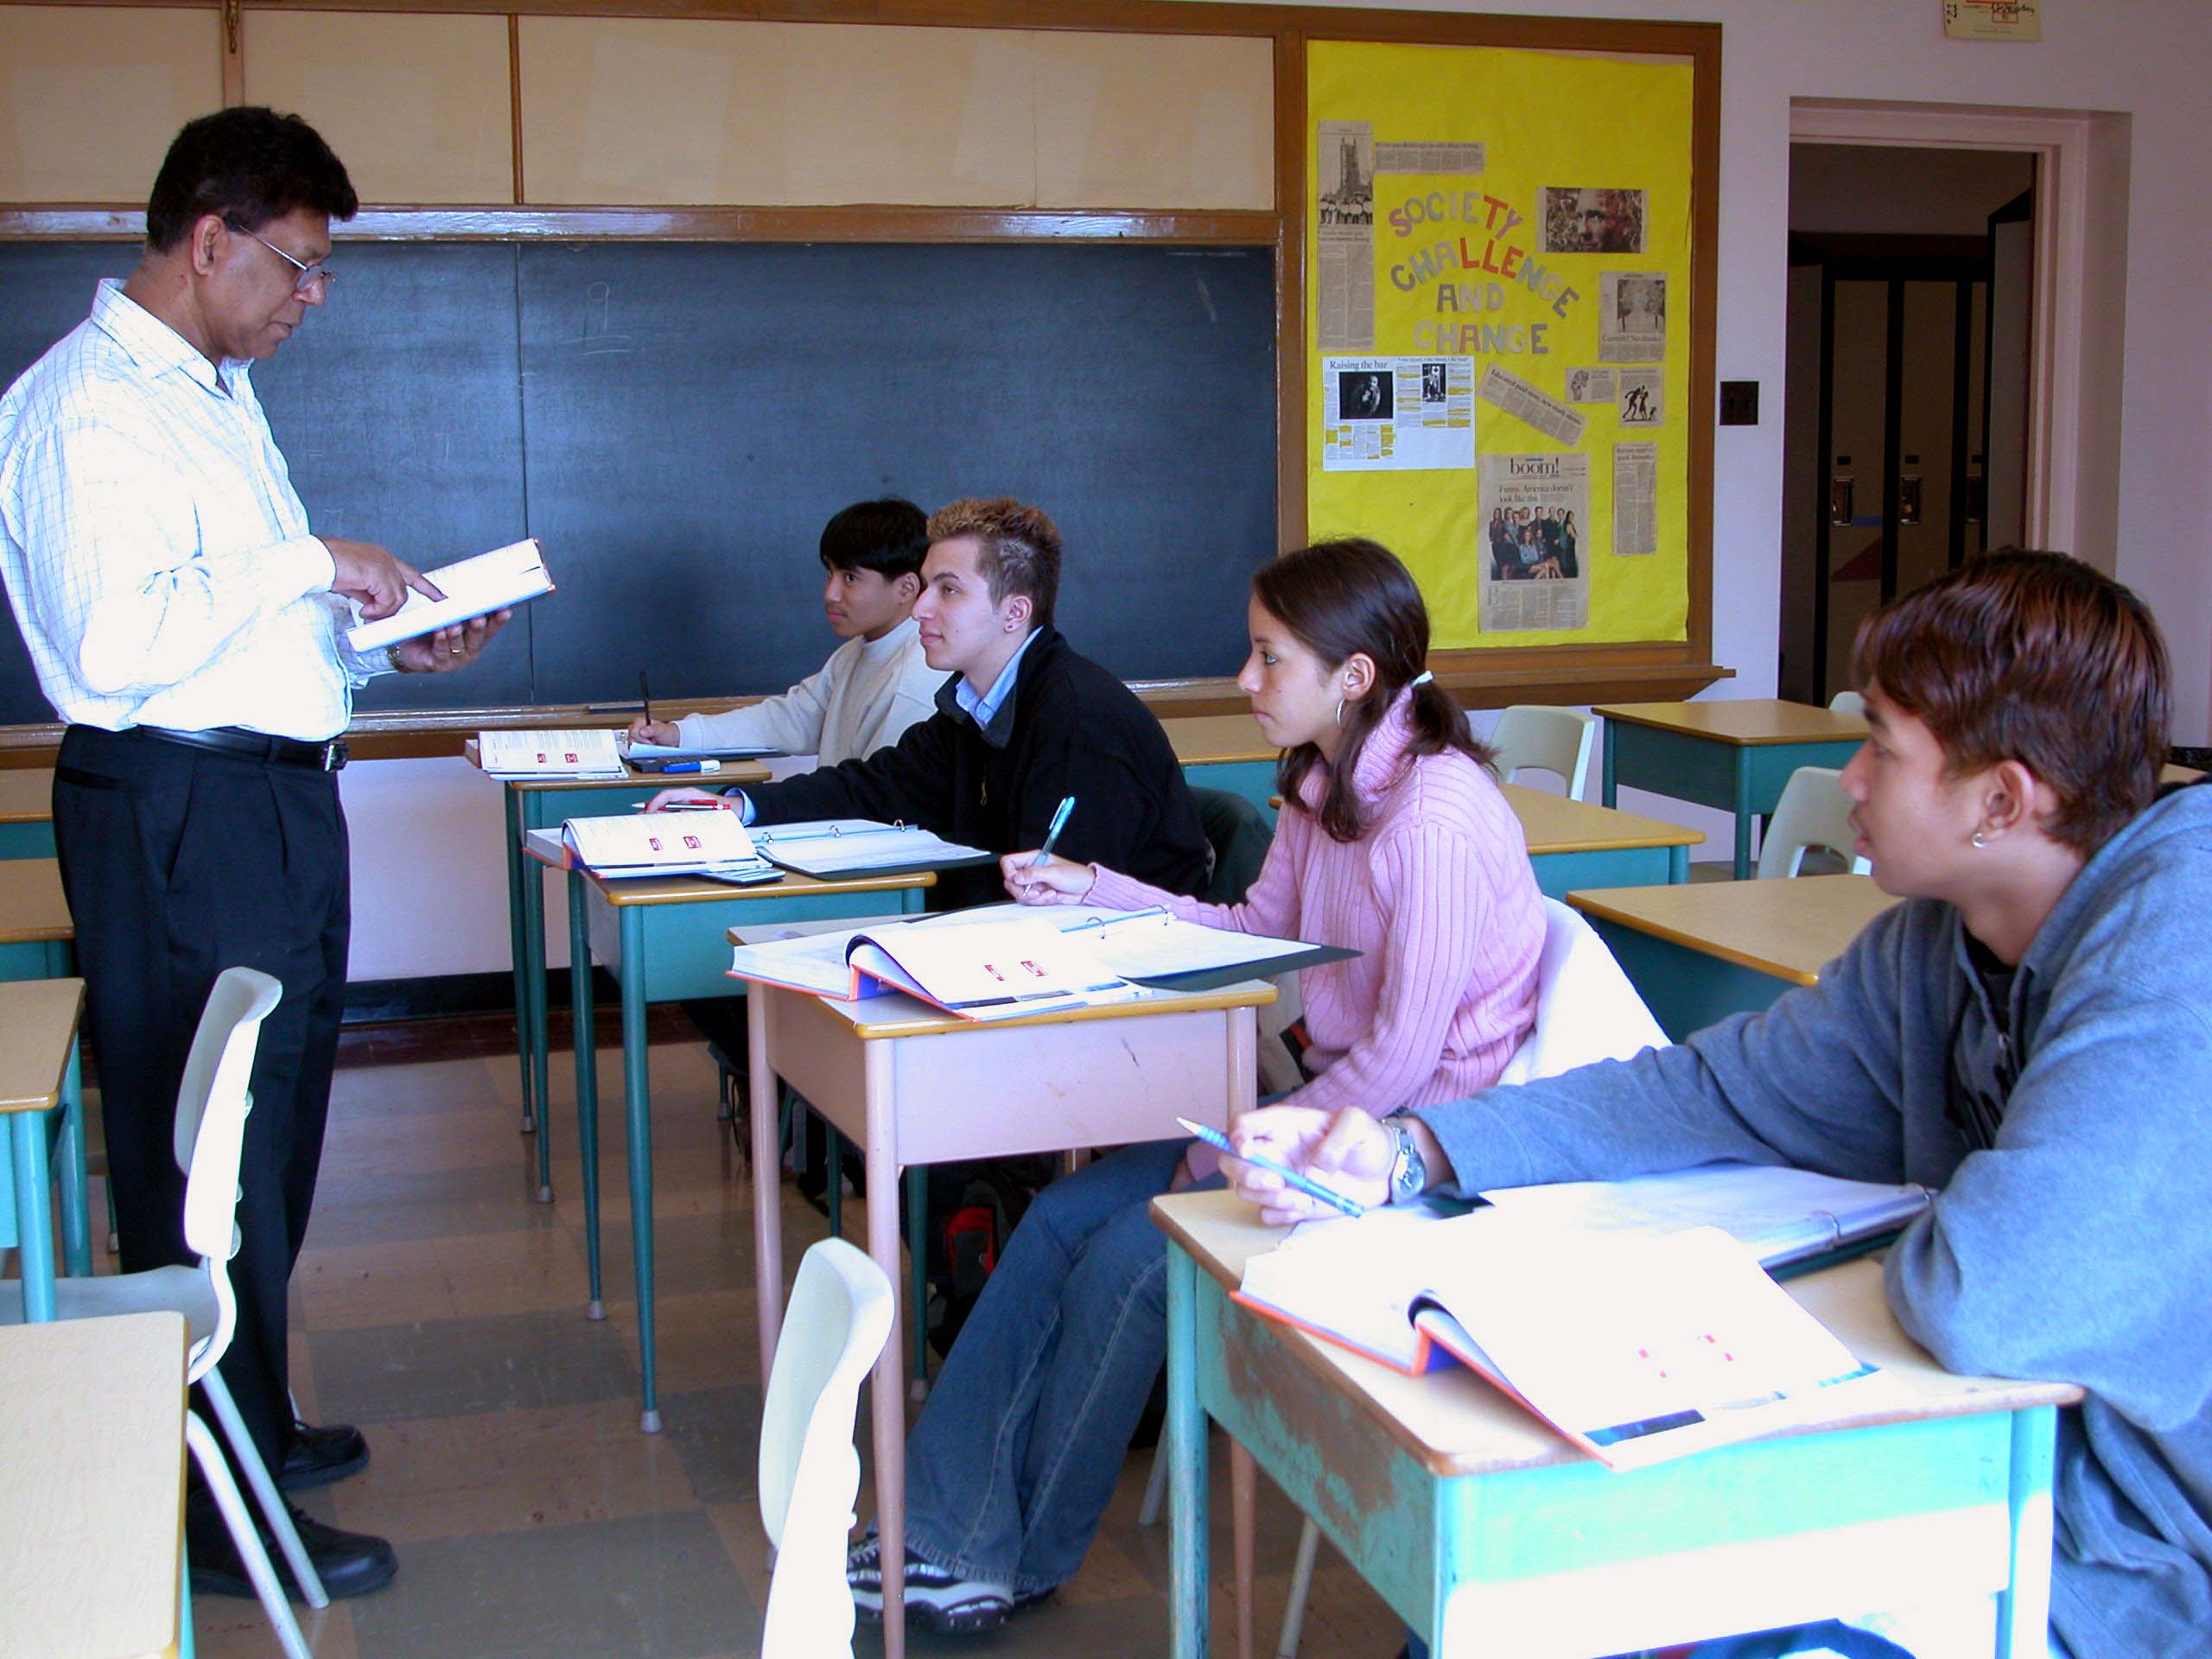 Councellor talking to newcomer students